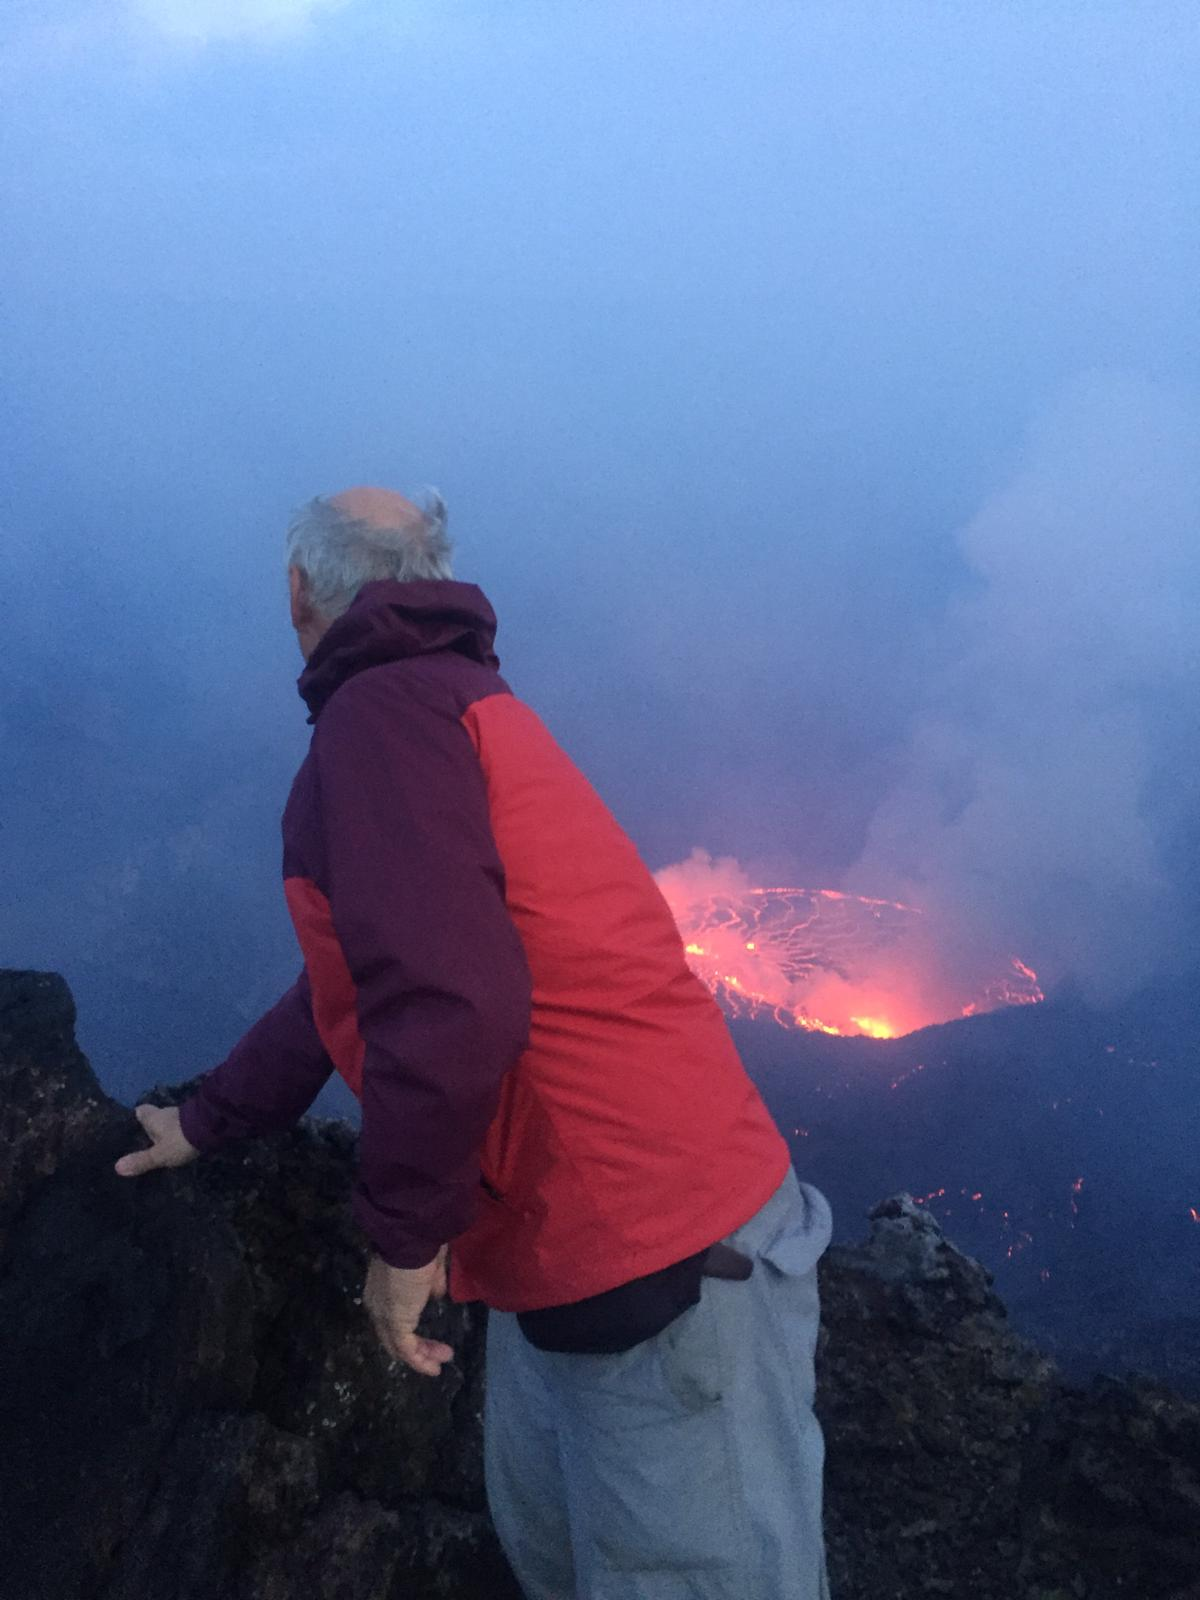 Day 2: Nyiragongo Volcano descent and departure